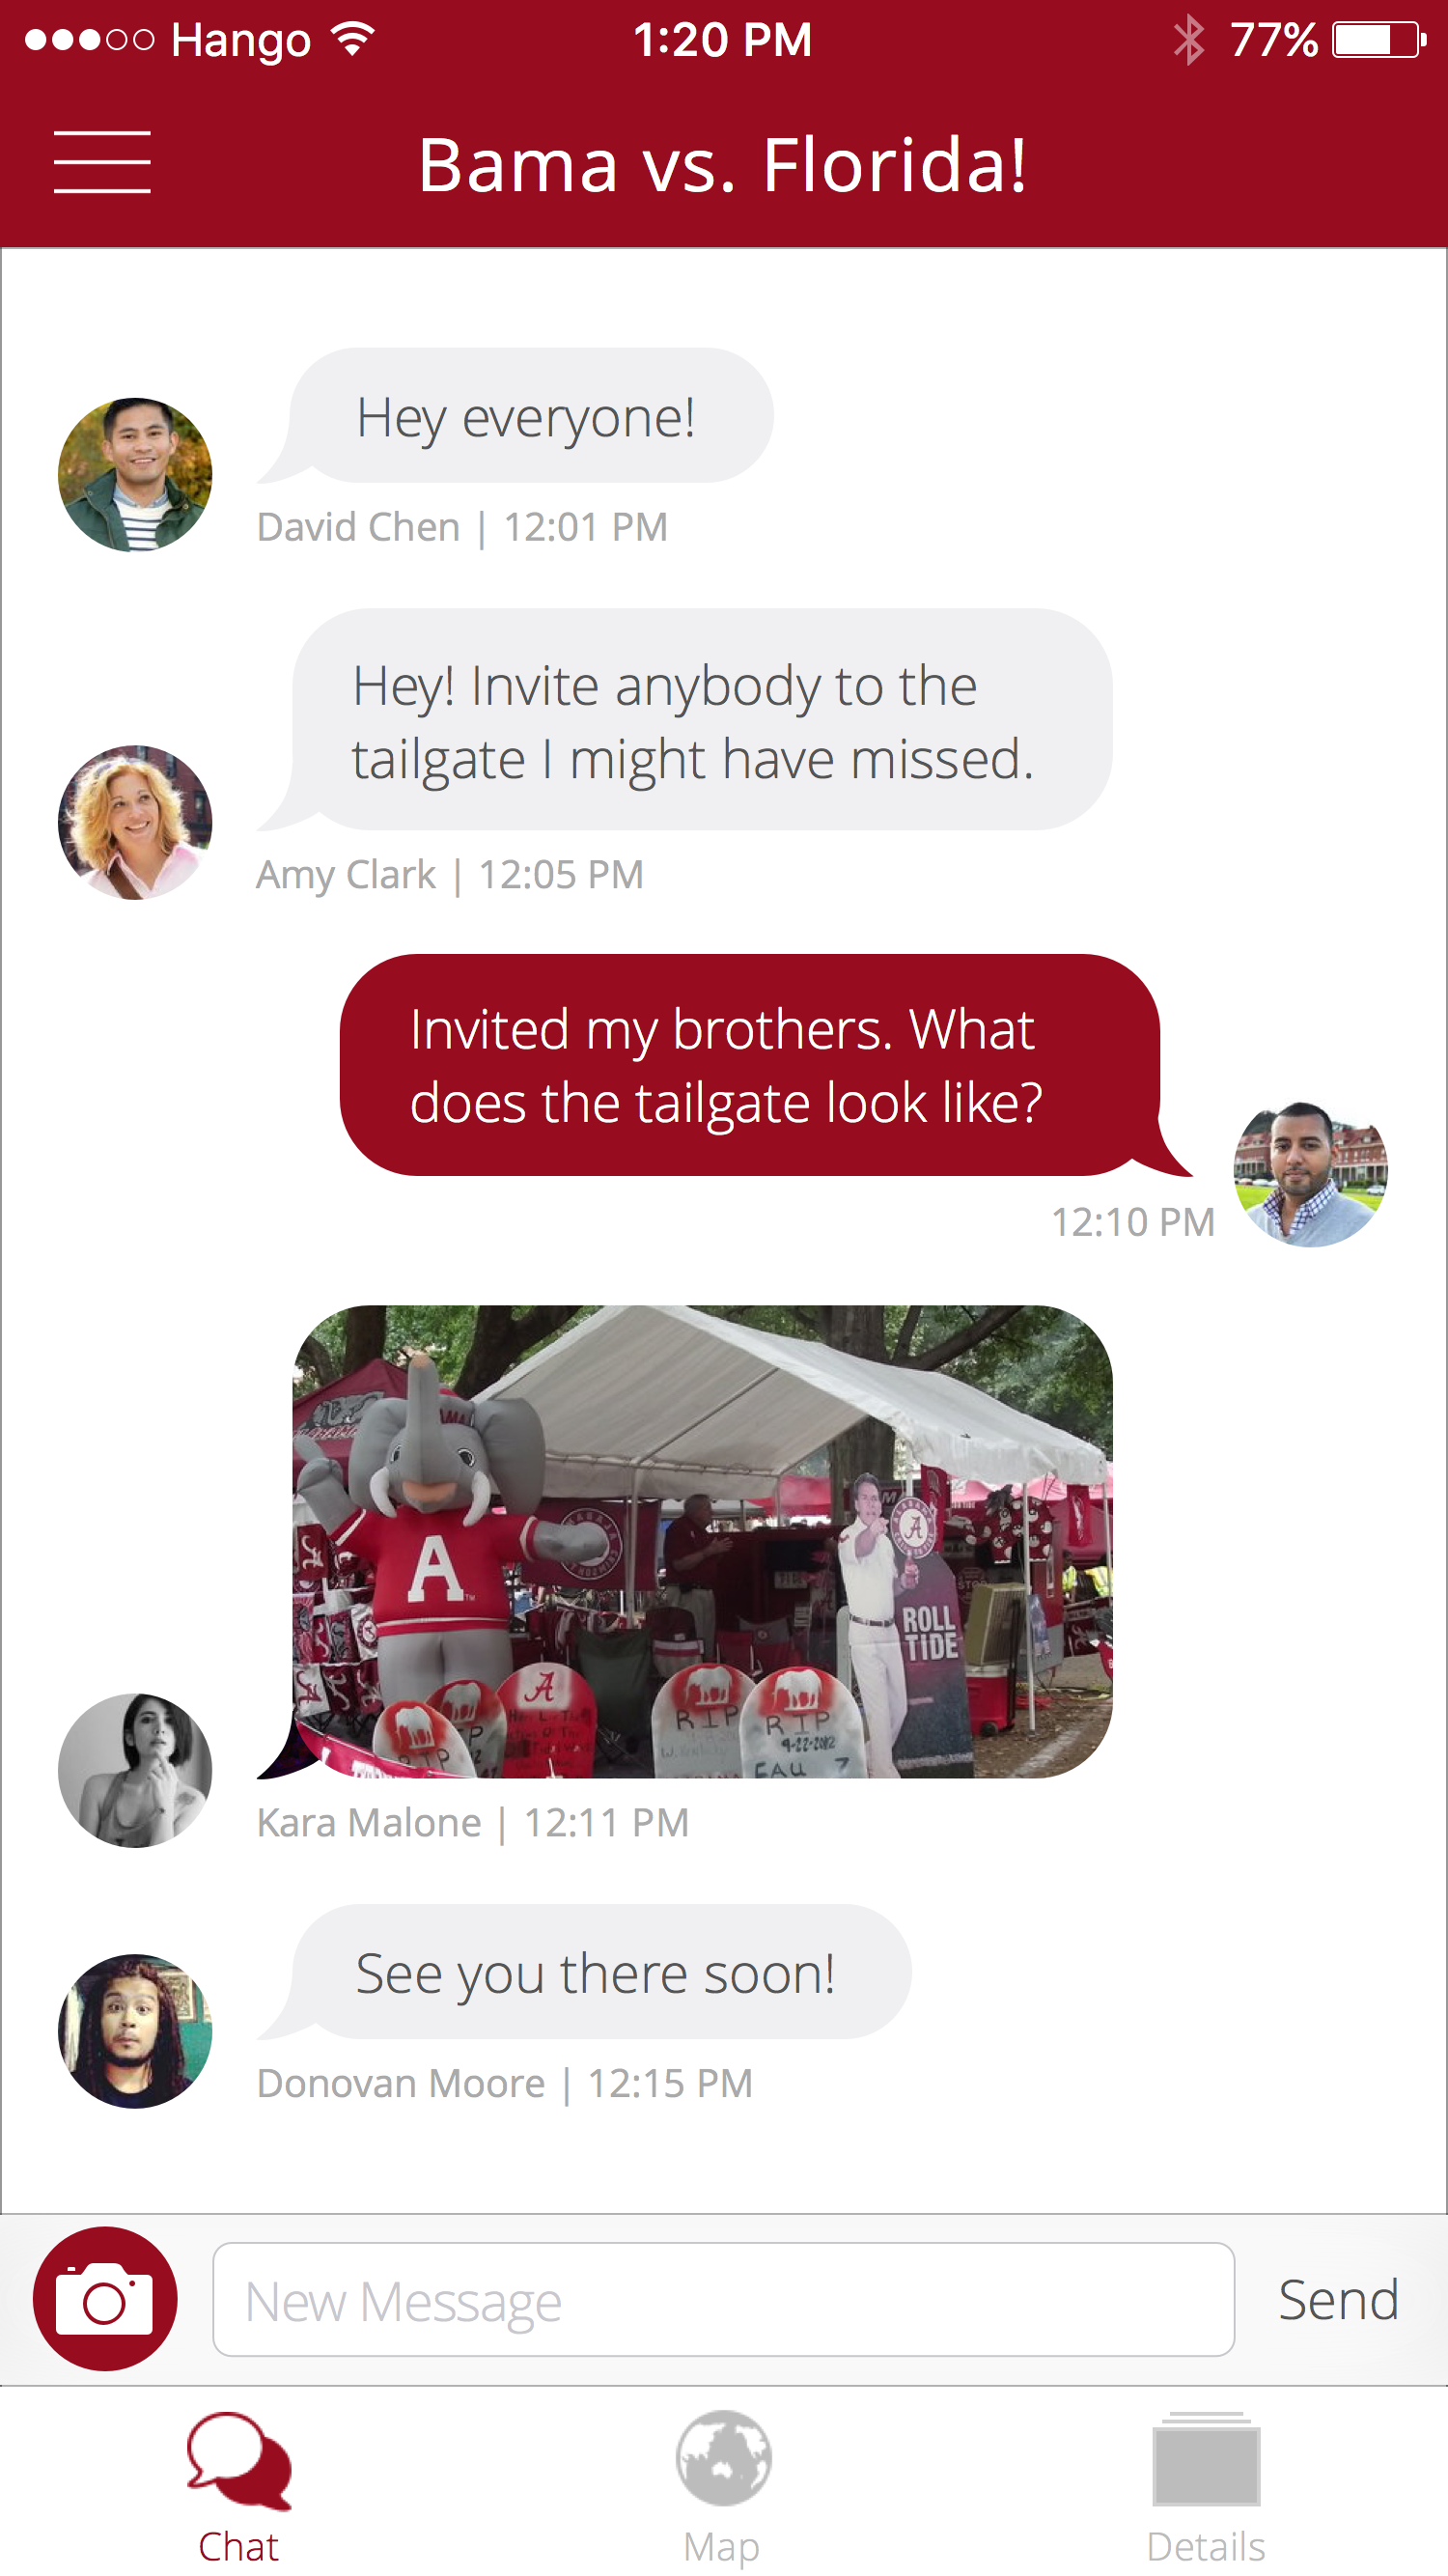 Hango Chat   Chat with your group of tailgaters at each game and share photos and videos.